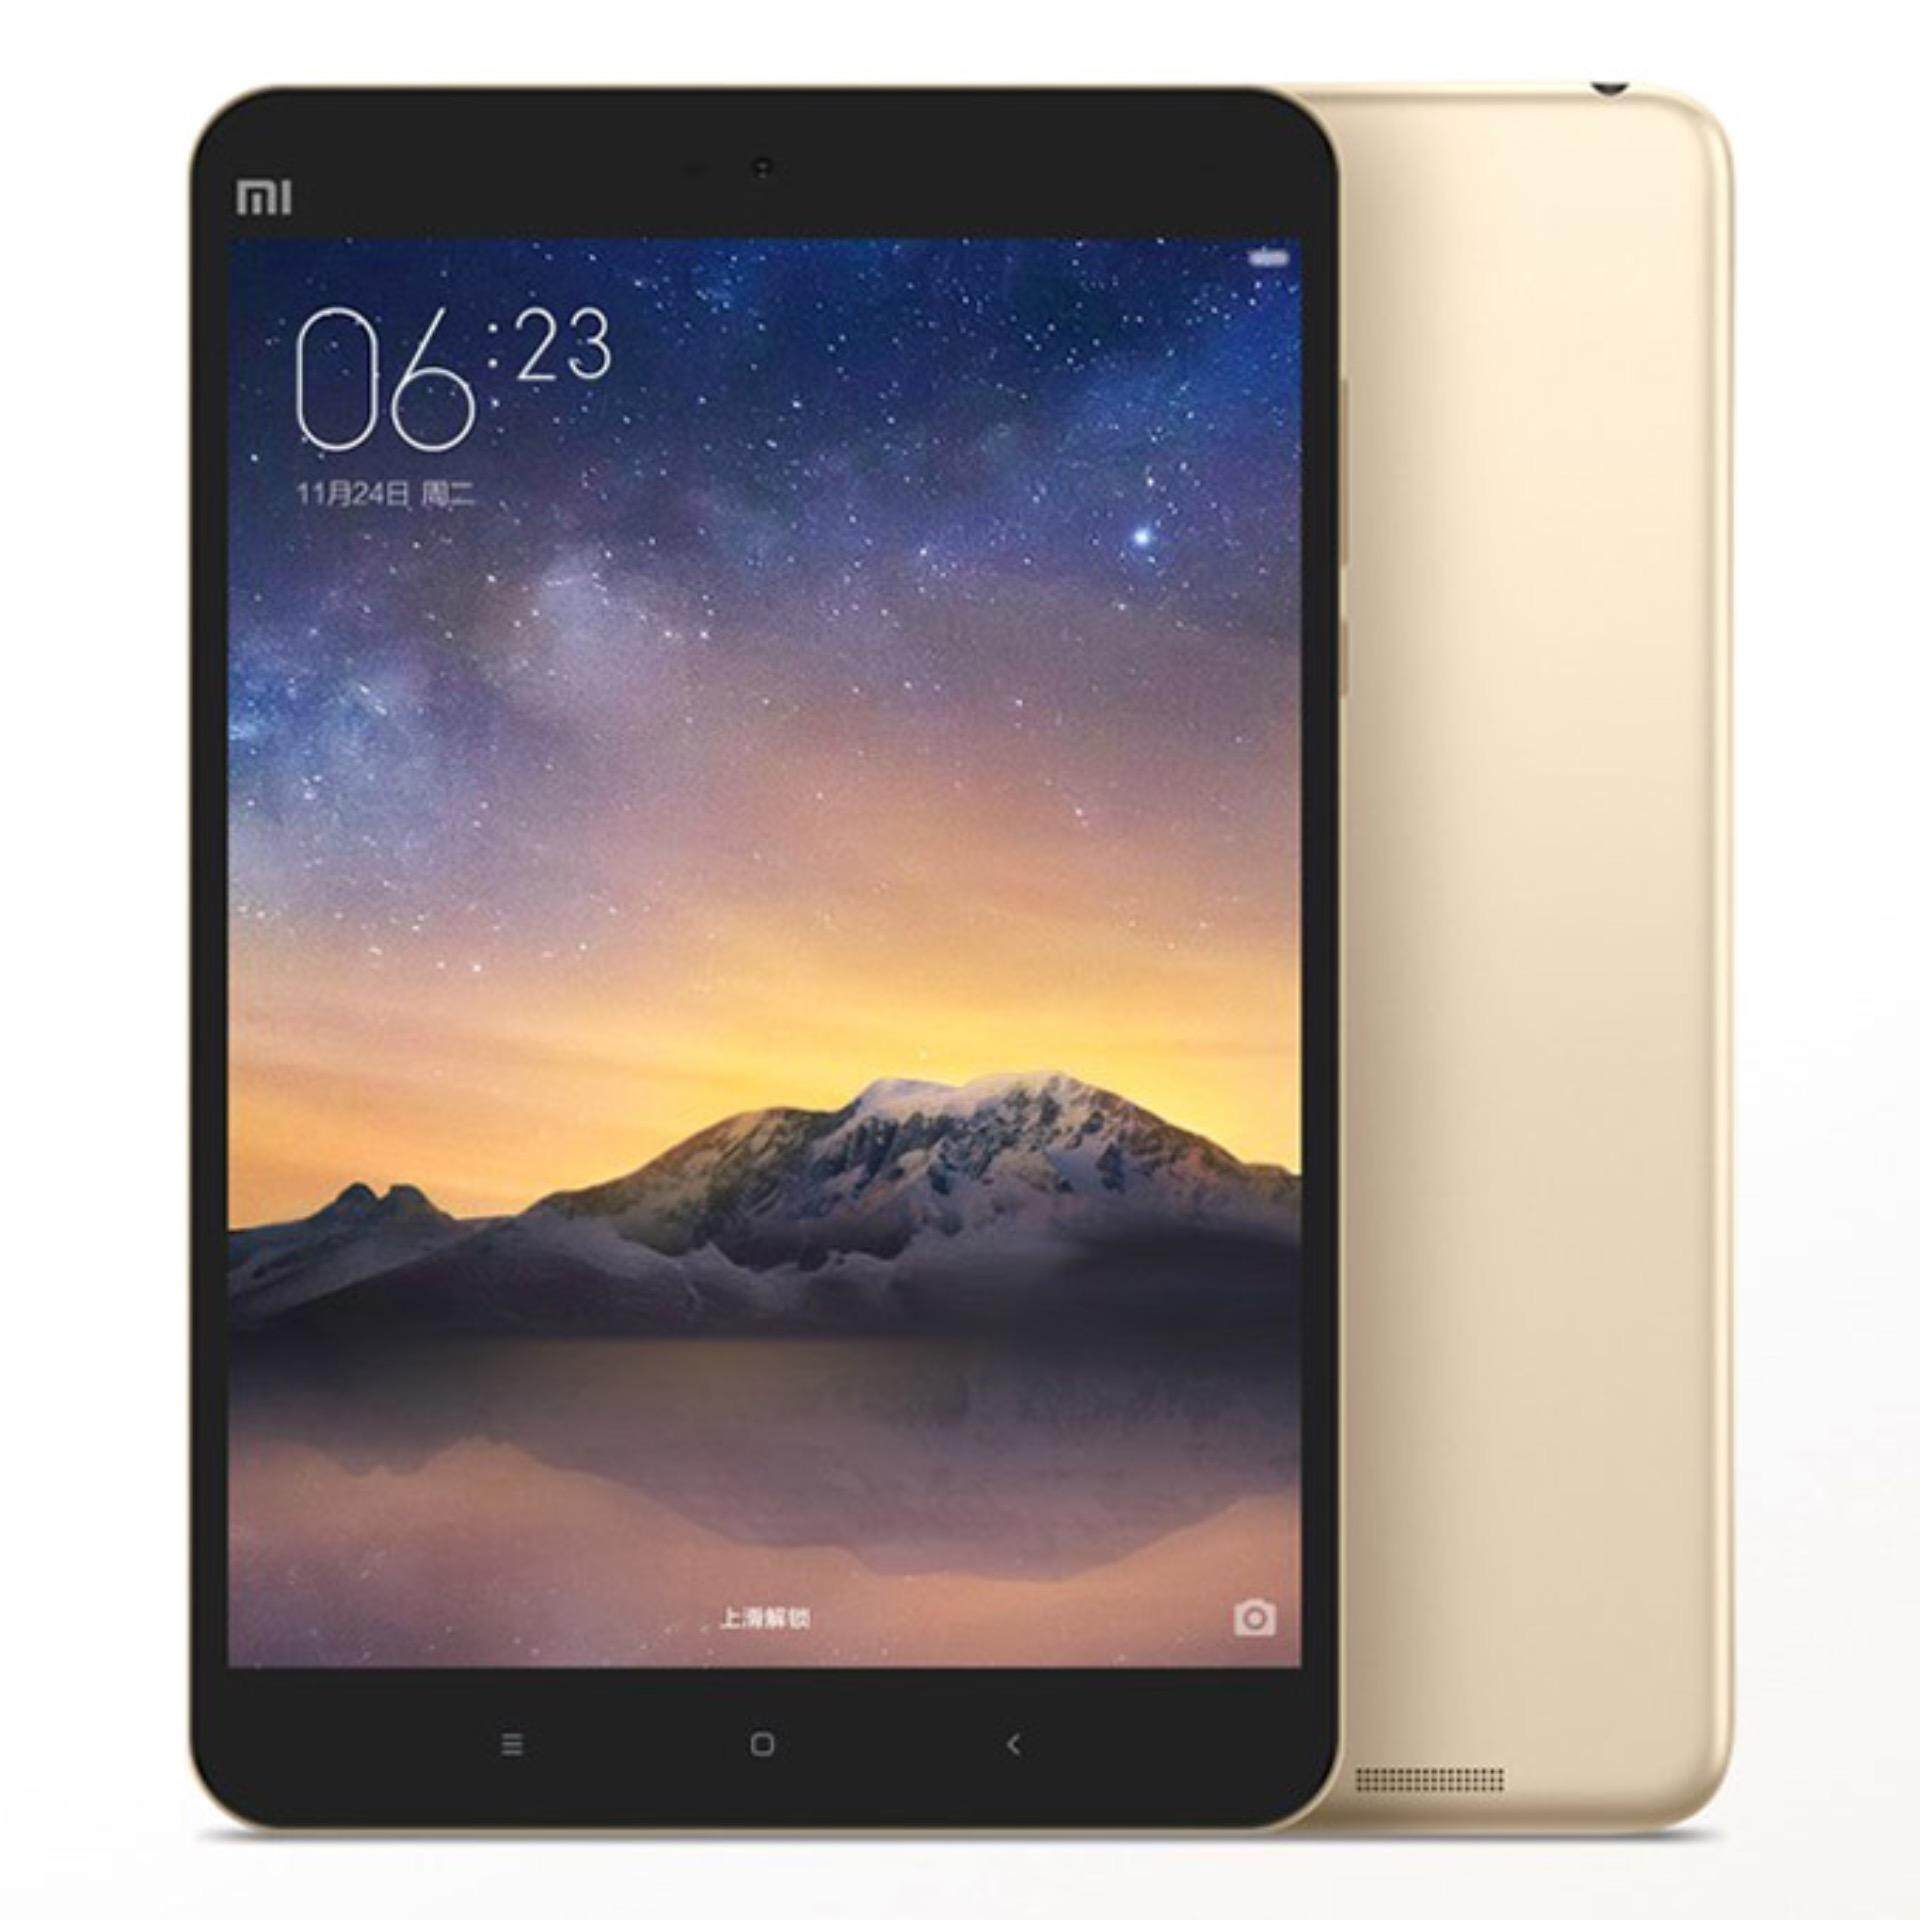 XIAOMI Mi Pad 2 64GB Android MIUI Intel ATOM X5-Z8500 Quad-Core MiPad II, 1 year warranty, (Original imported - unsealed set) Global ROM